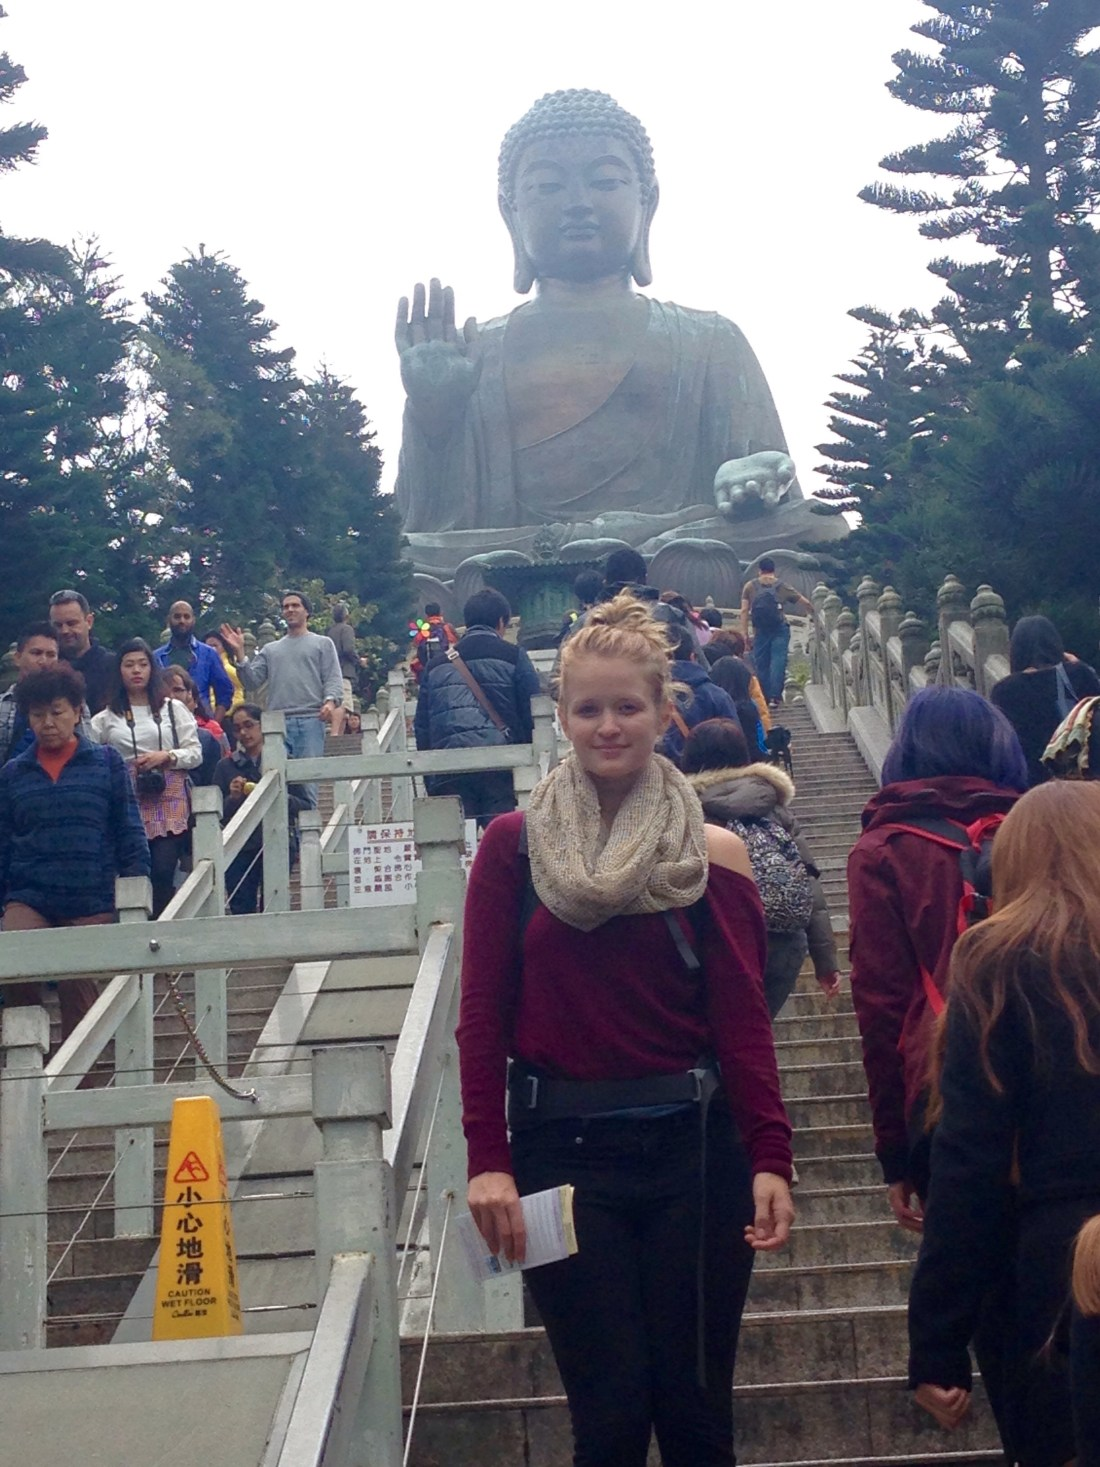 Visiting Buddha on Lantau Island